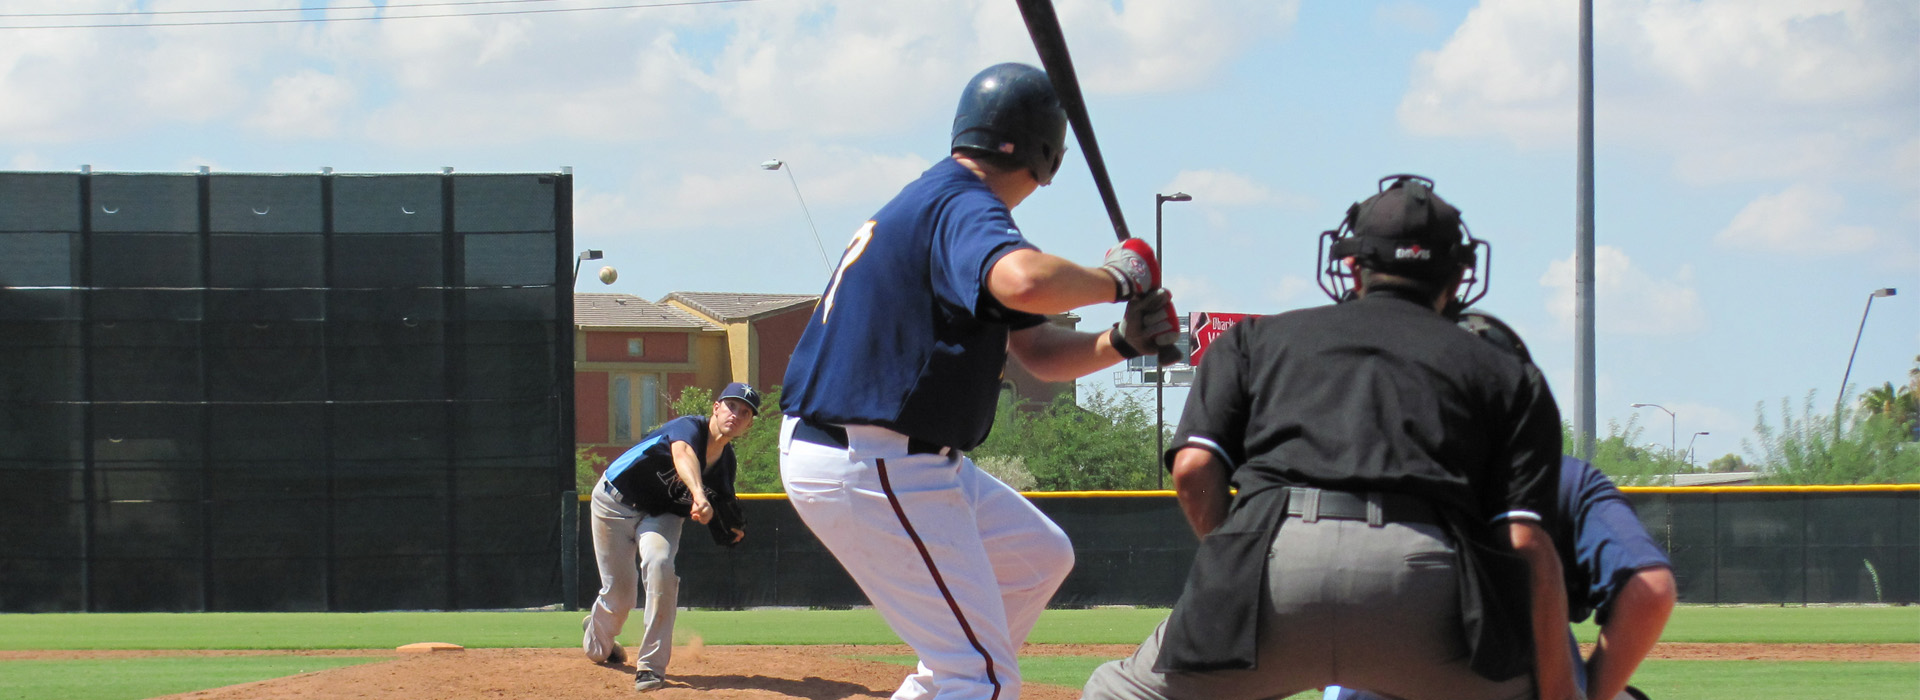 Arizona-Mens-Senior-Baseball-League-AZMSBL-Homepage8